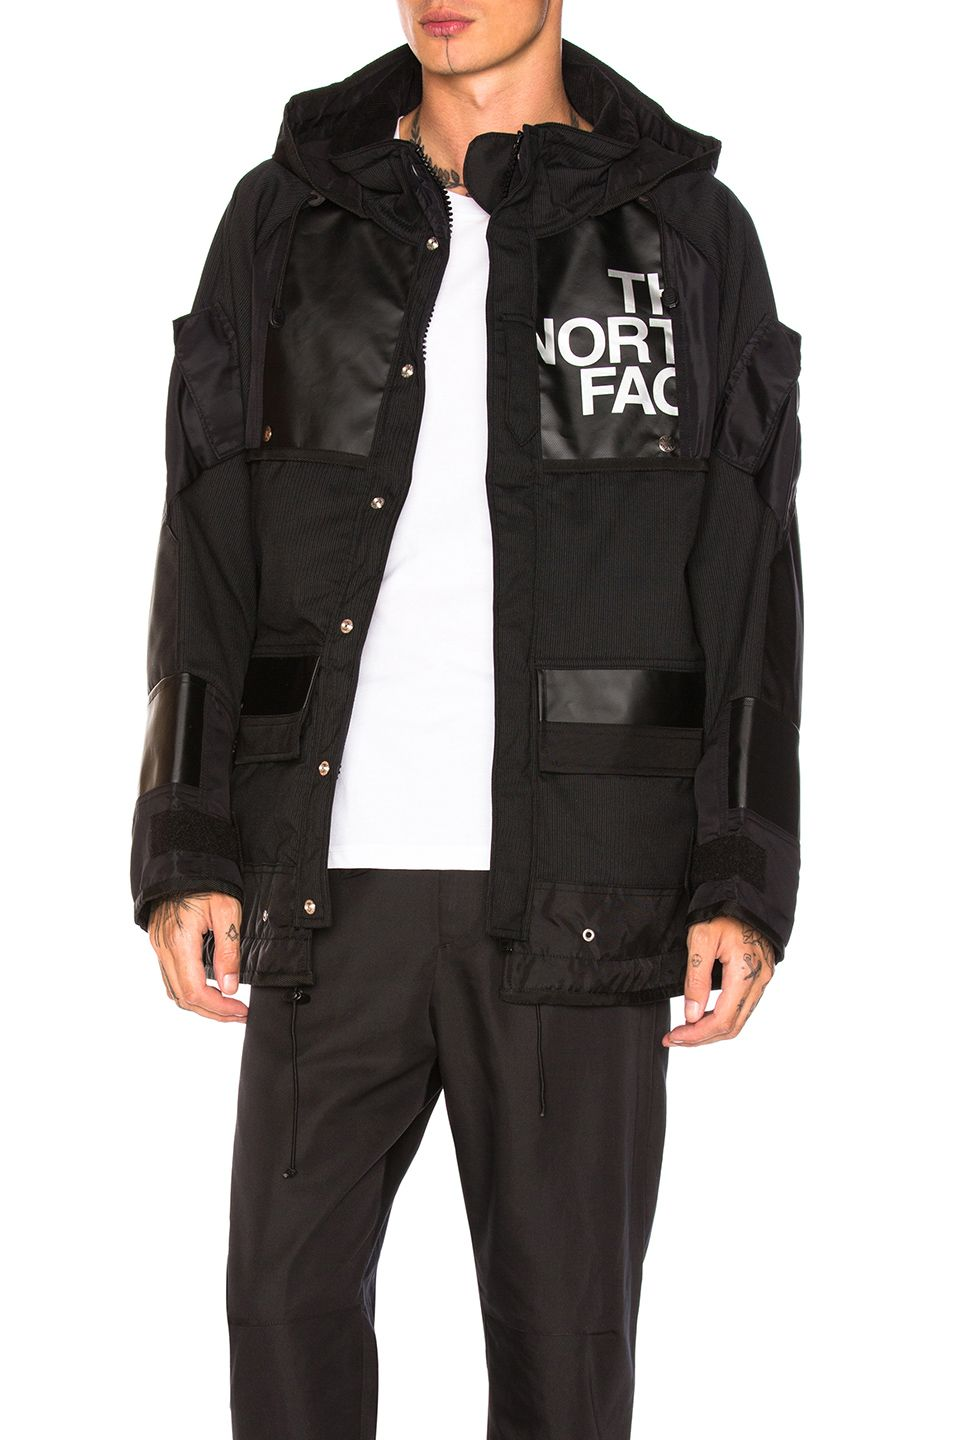 4a7f23e89 Junya Watanabe x The North Face Jacket   The North Face in 2019 ...